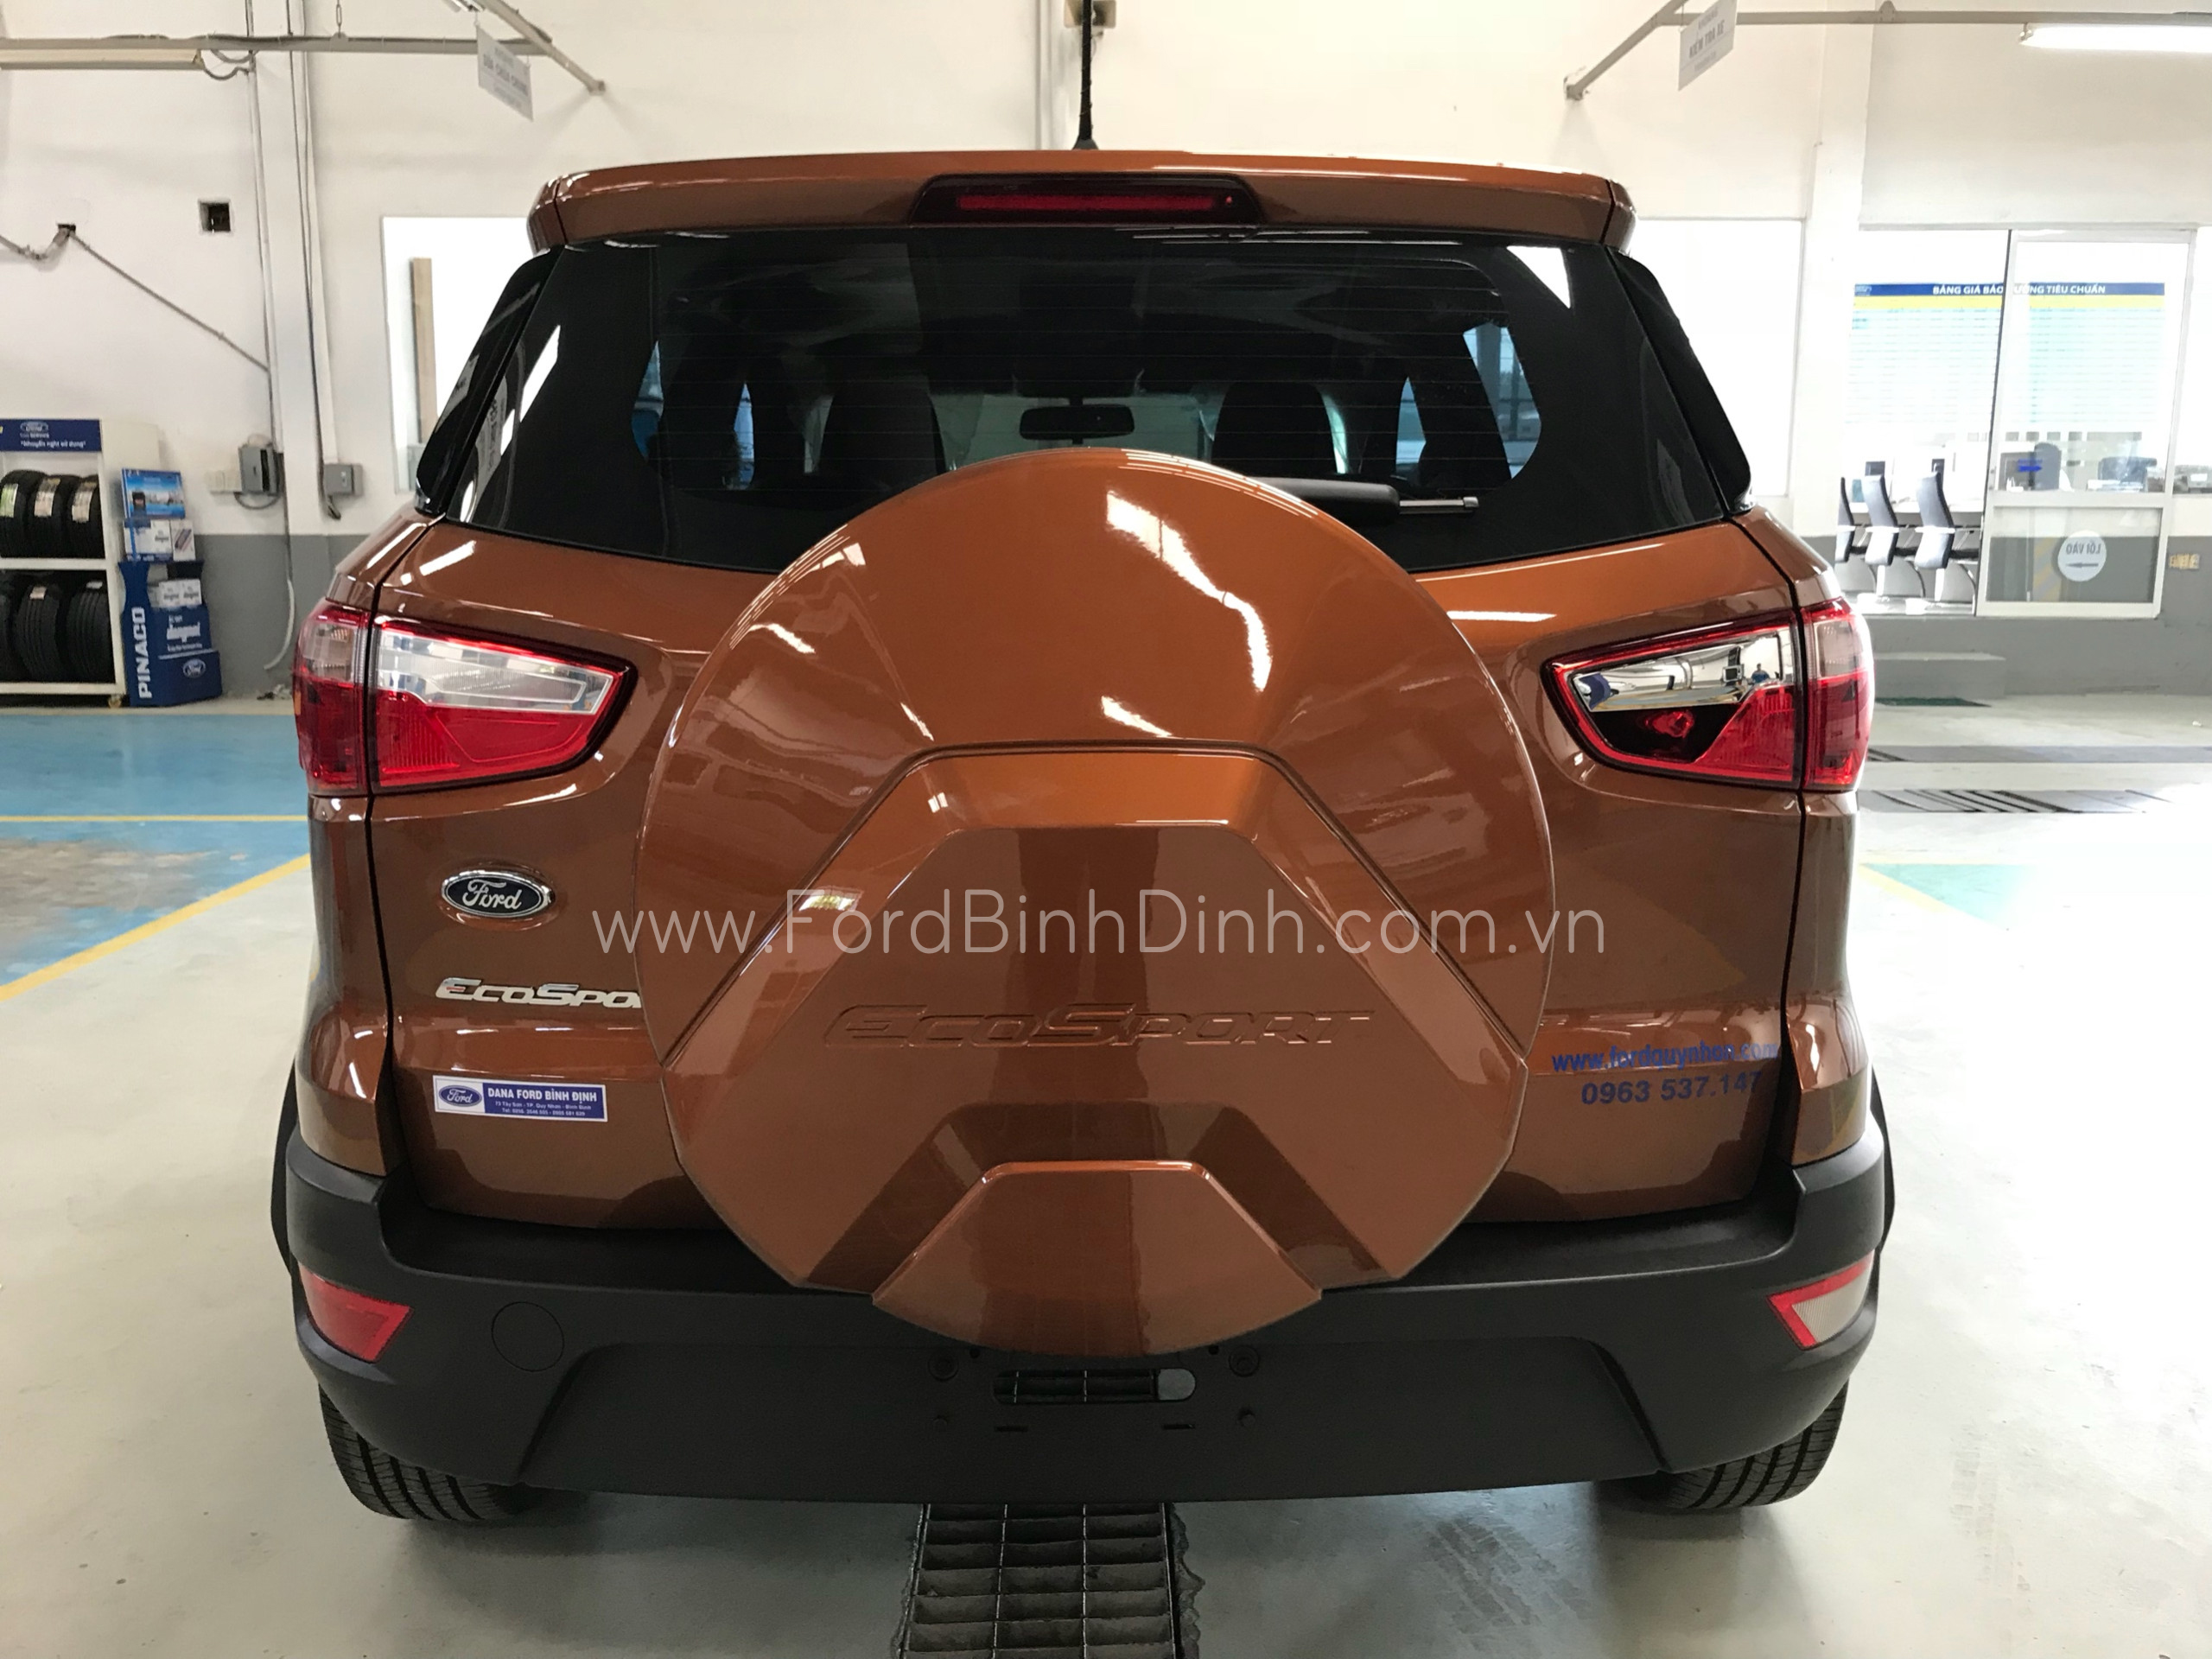 ecosport-1.5l-ambiente-at-ford-binh-dinh-com-vn-4